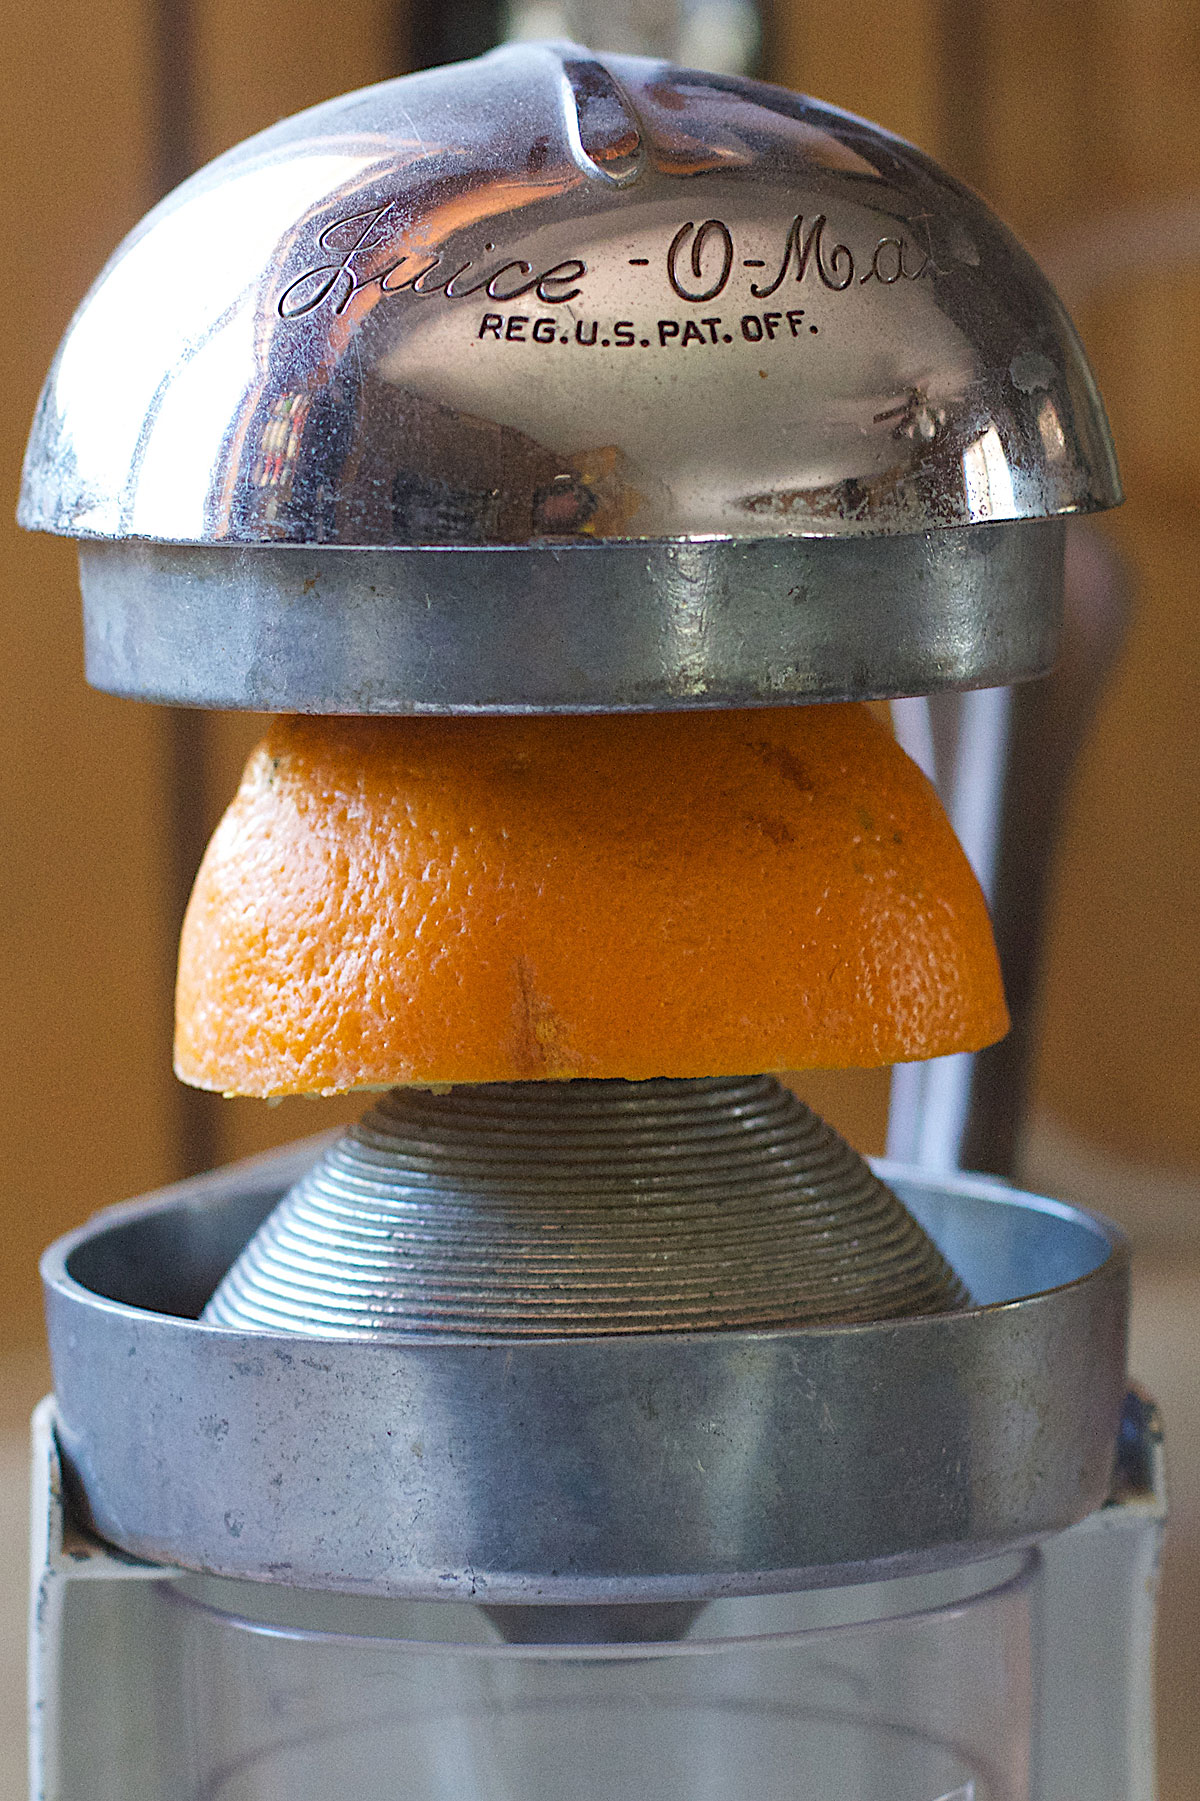 Manual hand-press citrus juicer in use